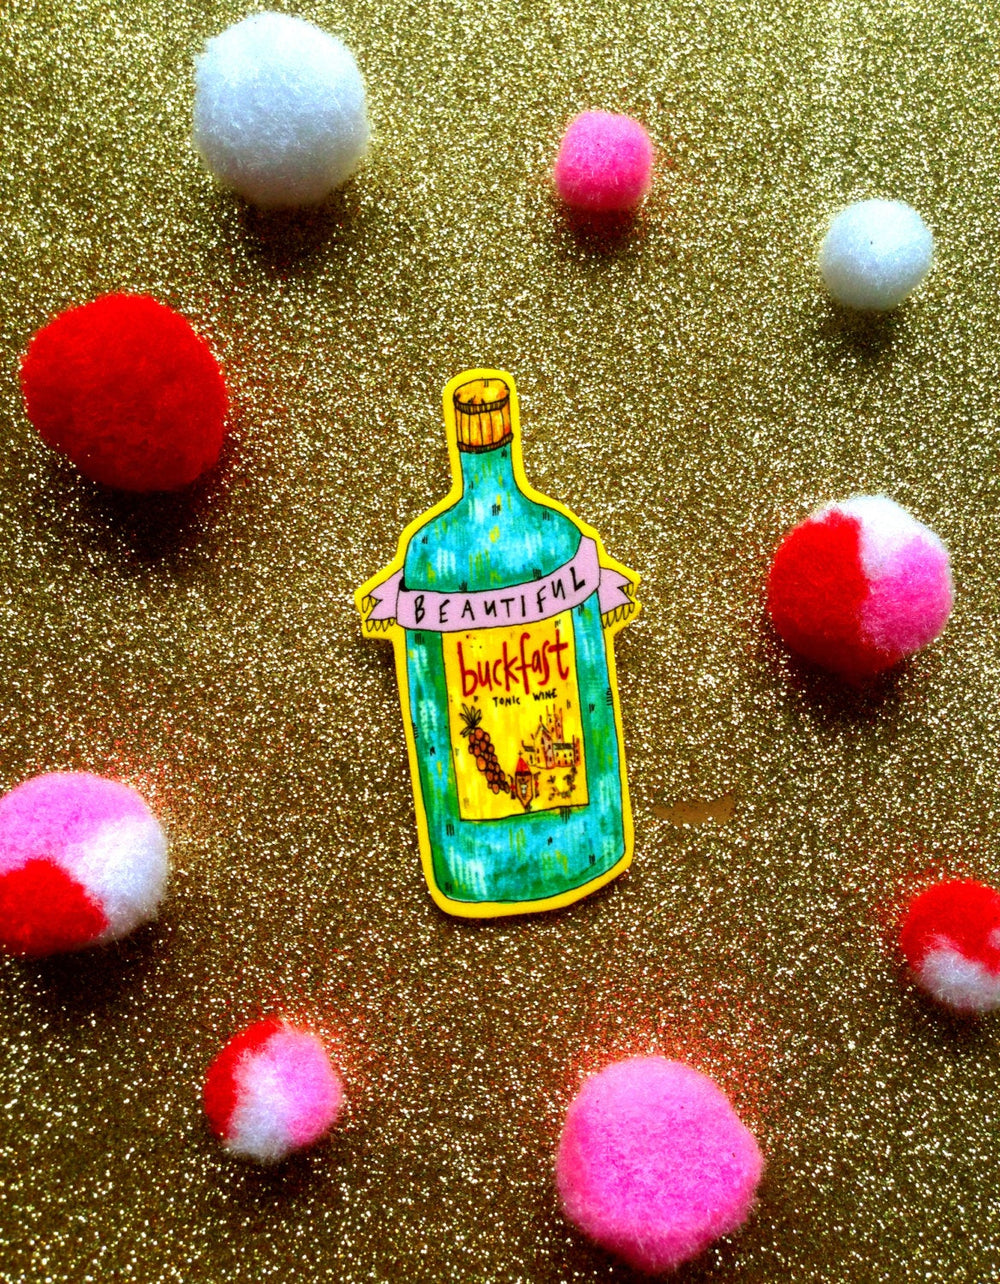 Beautiful Buckie Boozy Brooch, Quirky Pin Badge. Perfect for Party Fun!